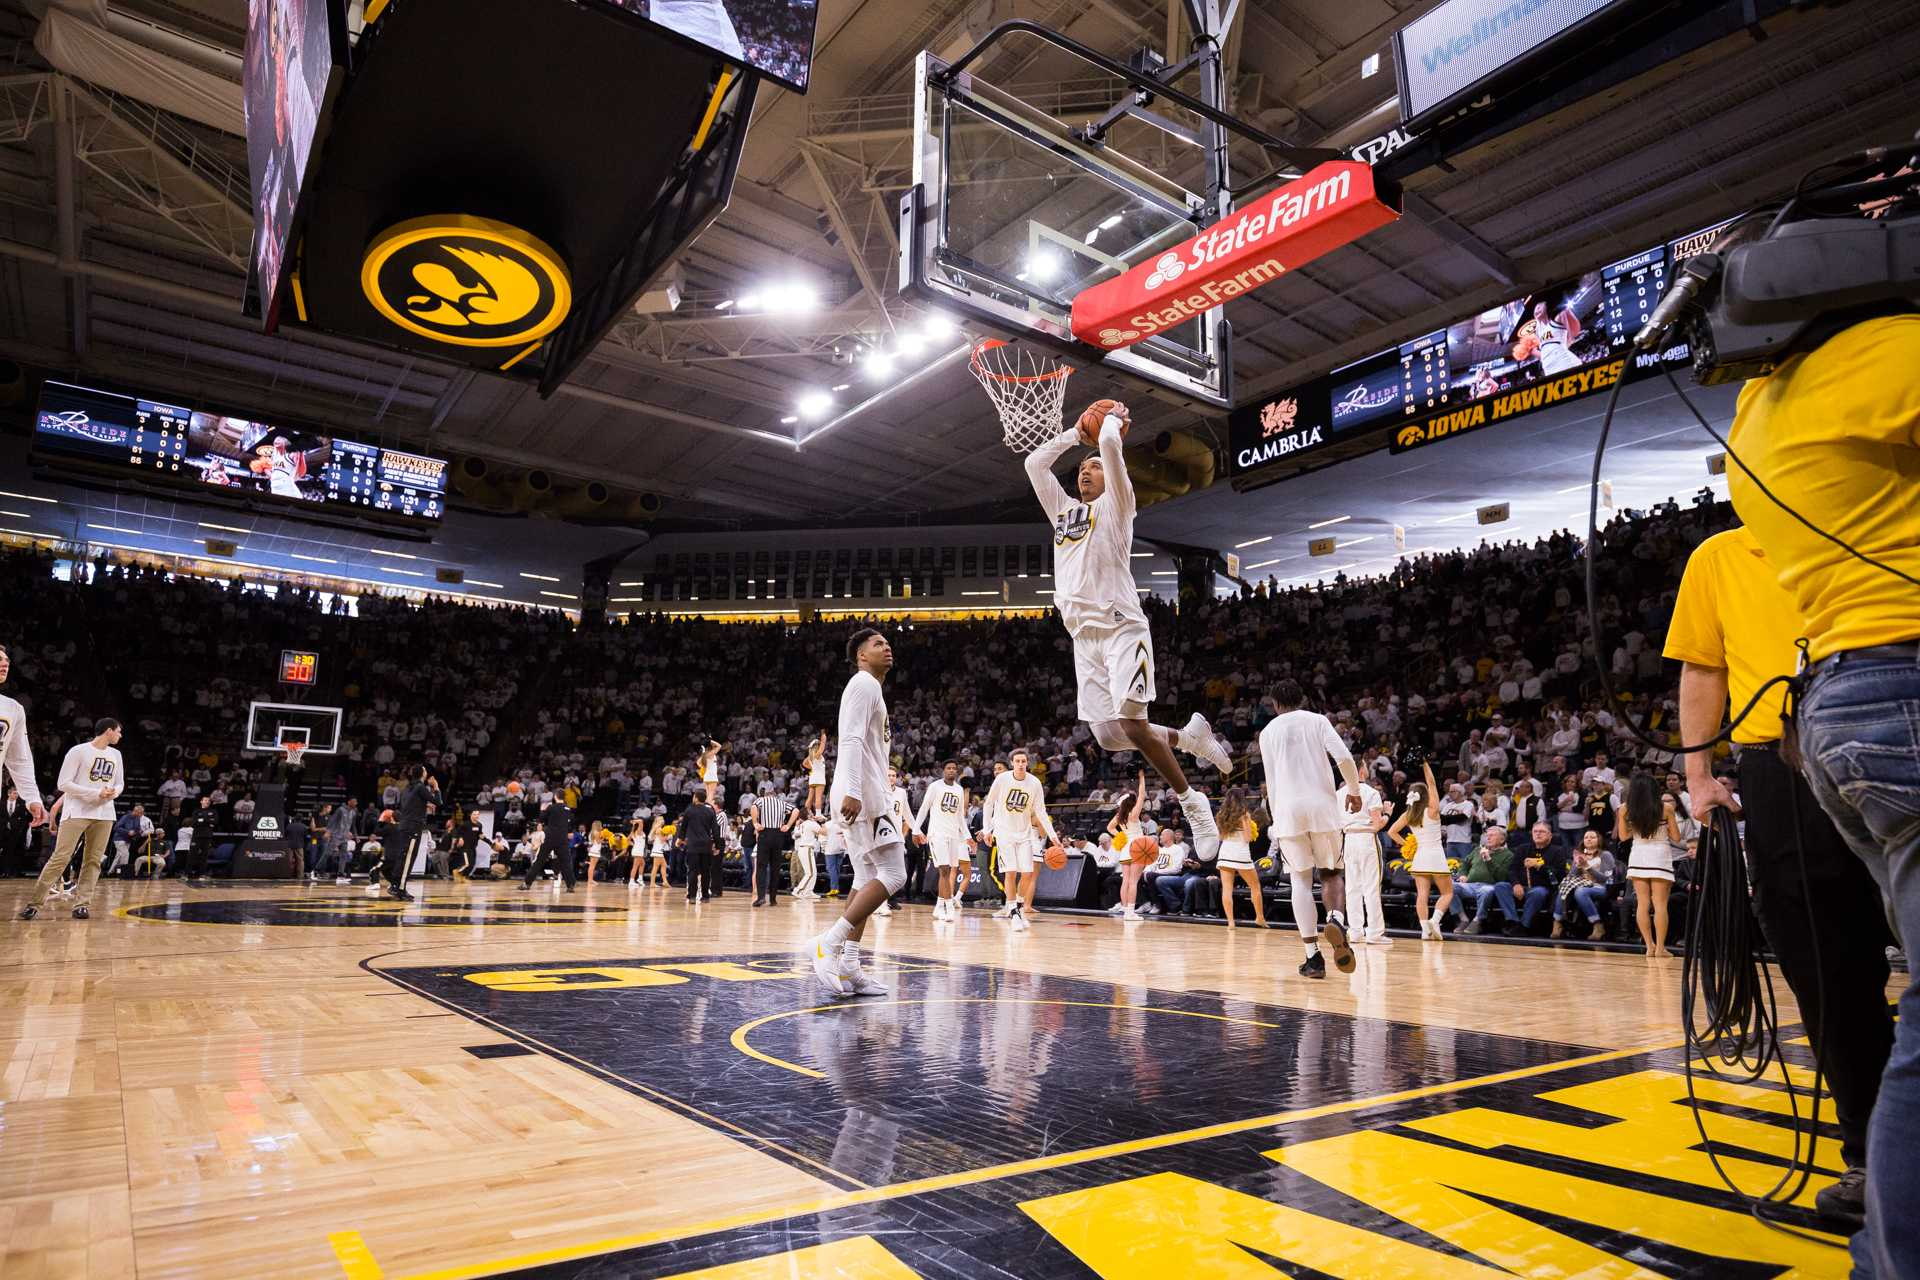 Players warm up in Carver-Hawkeye Arena before a basketball game against Purdue University on Saturday, Jan. 20, 2018. The Boilermakers defeated the Hawkeyes 87-64. (David Harmantas/The Daily Iowan)